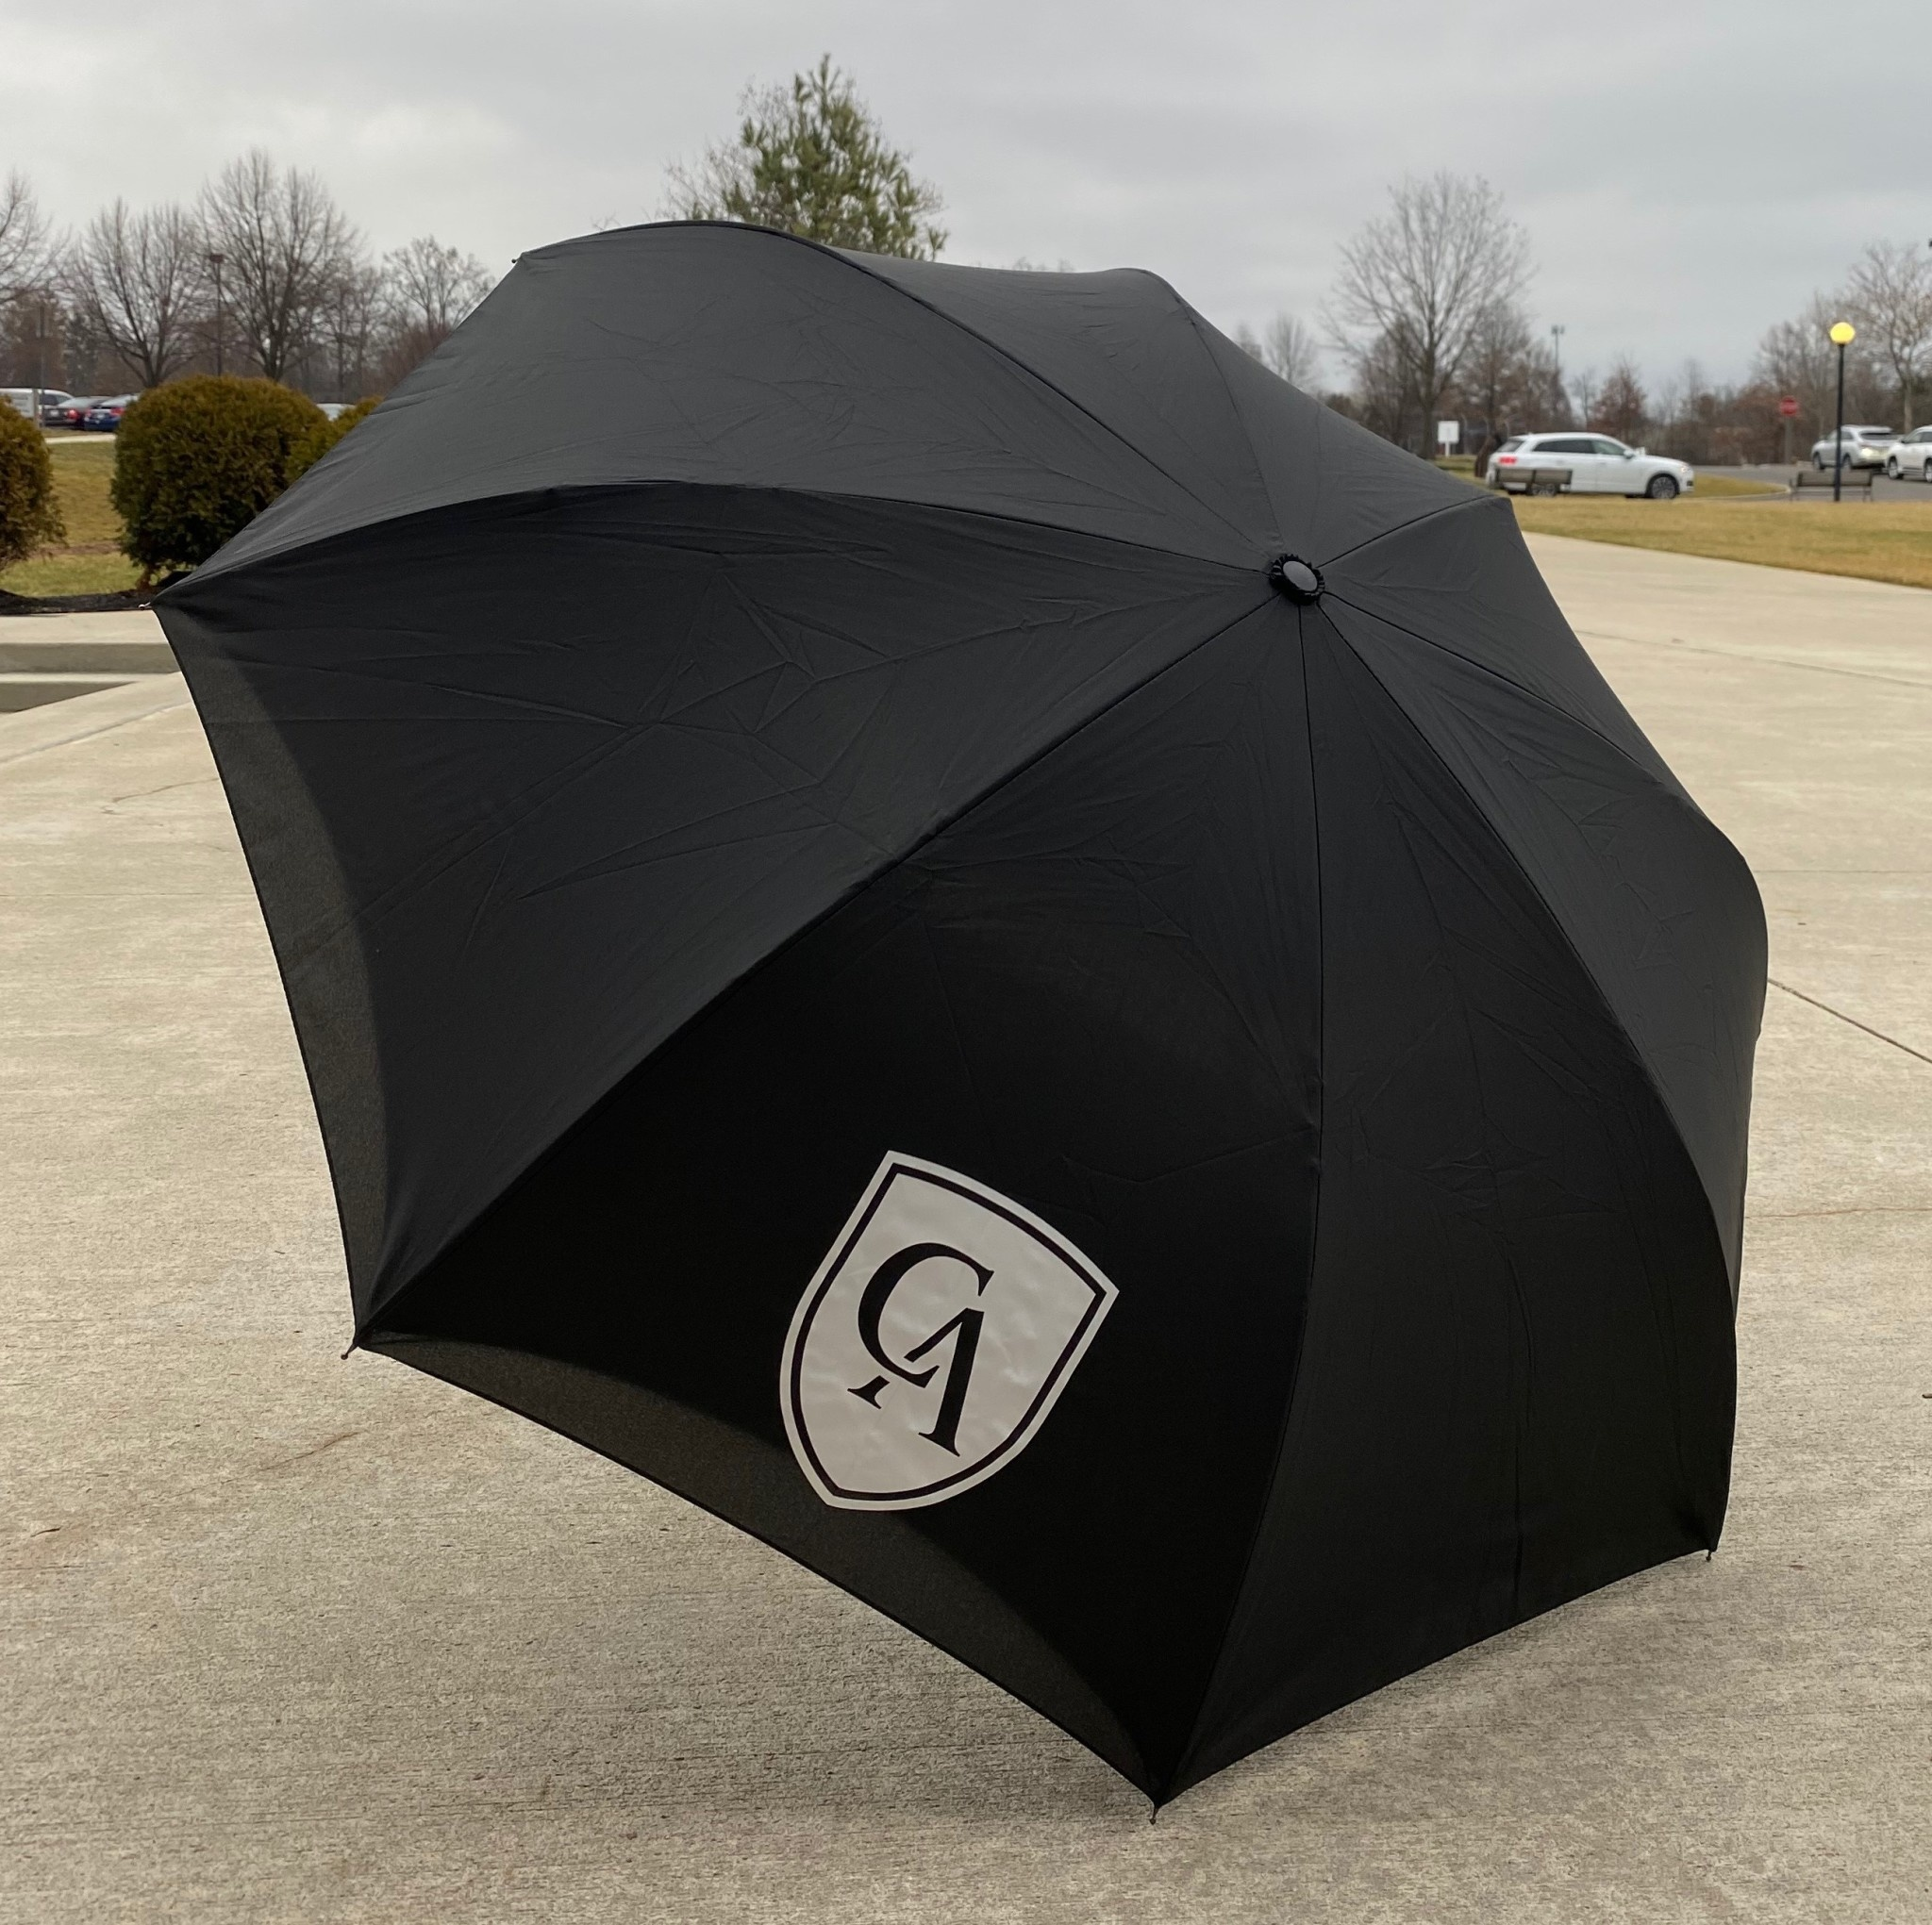 Haas-Jordan Haas-Jordan Reversible Umbrella 48 in. Black